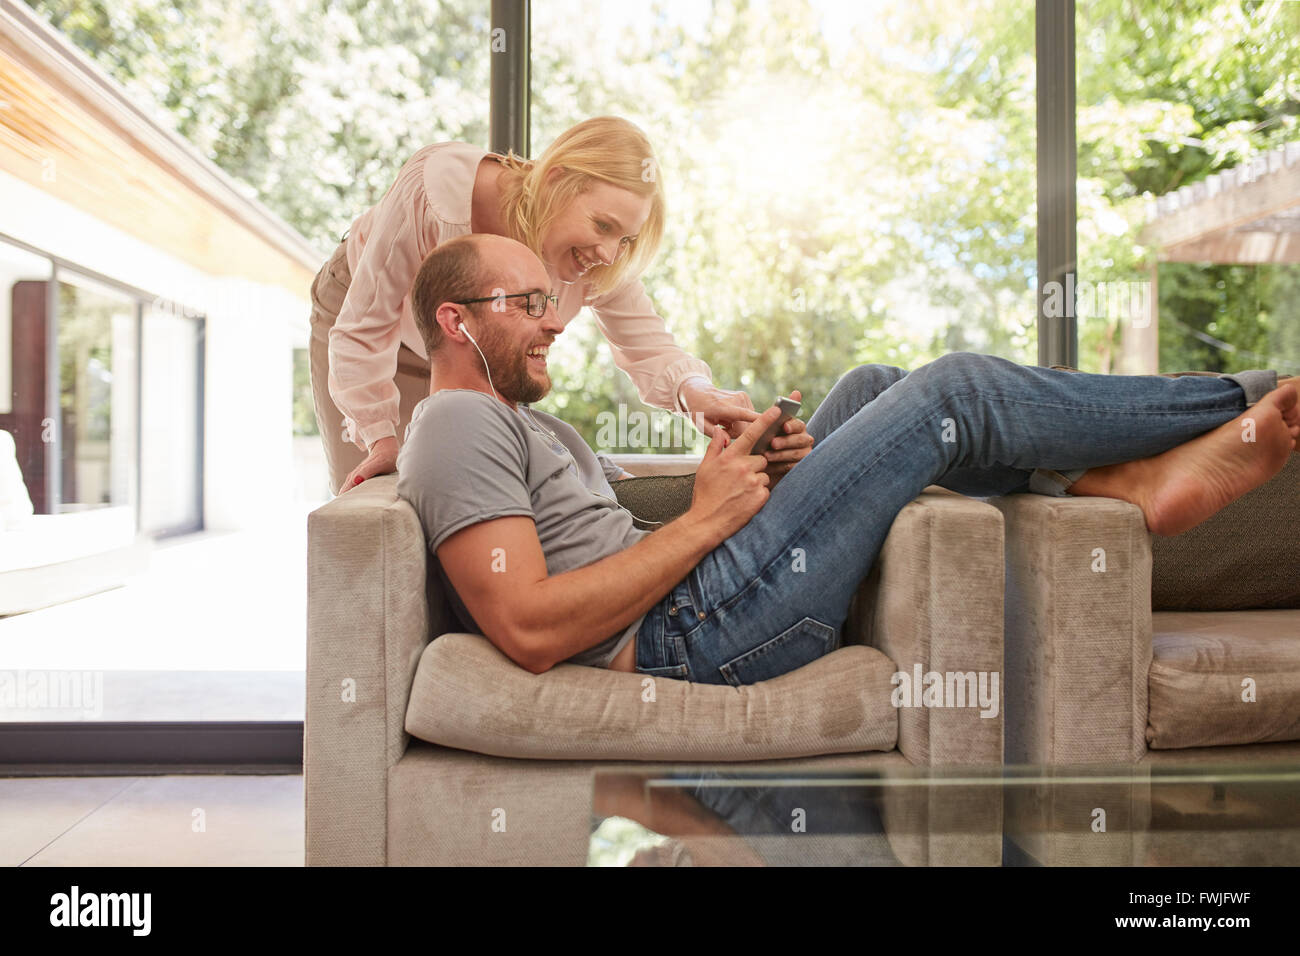 Indoor shot of mature couple at home using digital tablet and smiling. Man is sitting on sofa with woman standing - Stock Image